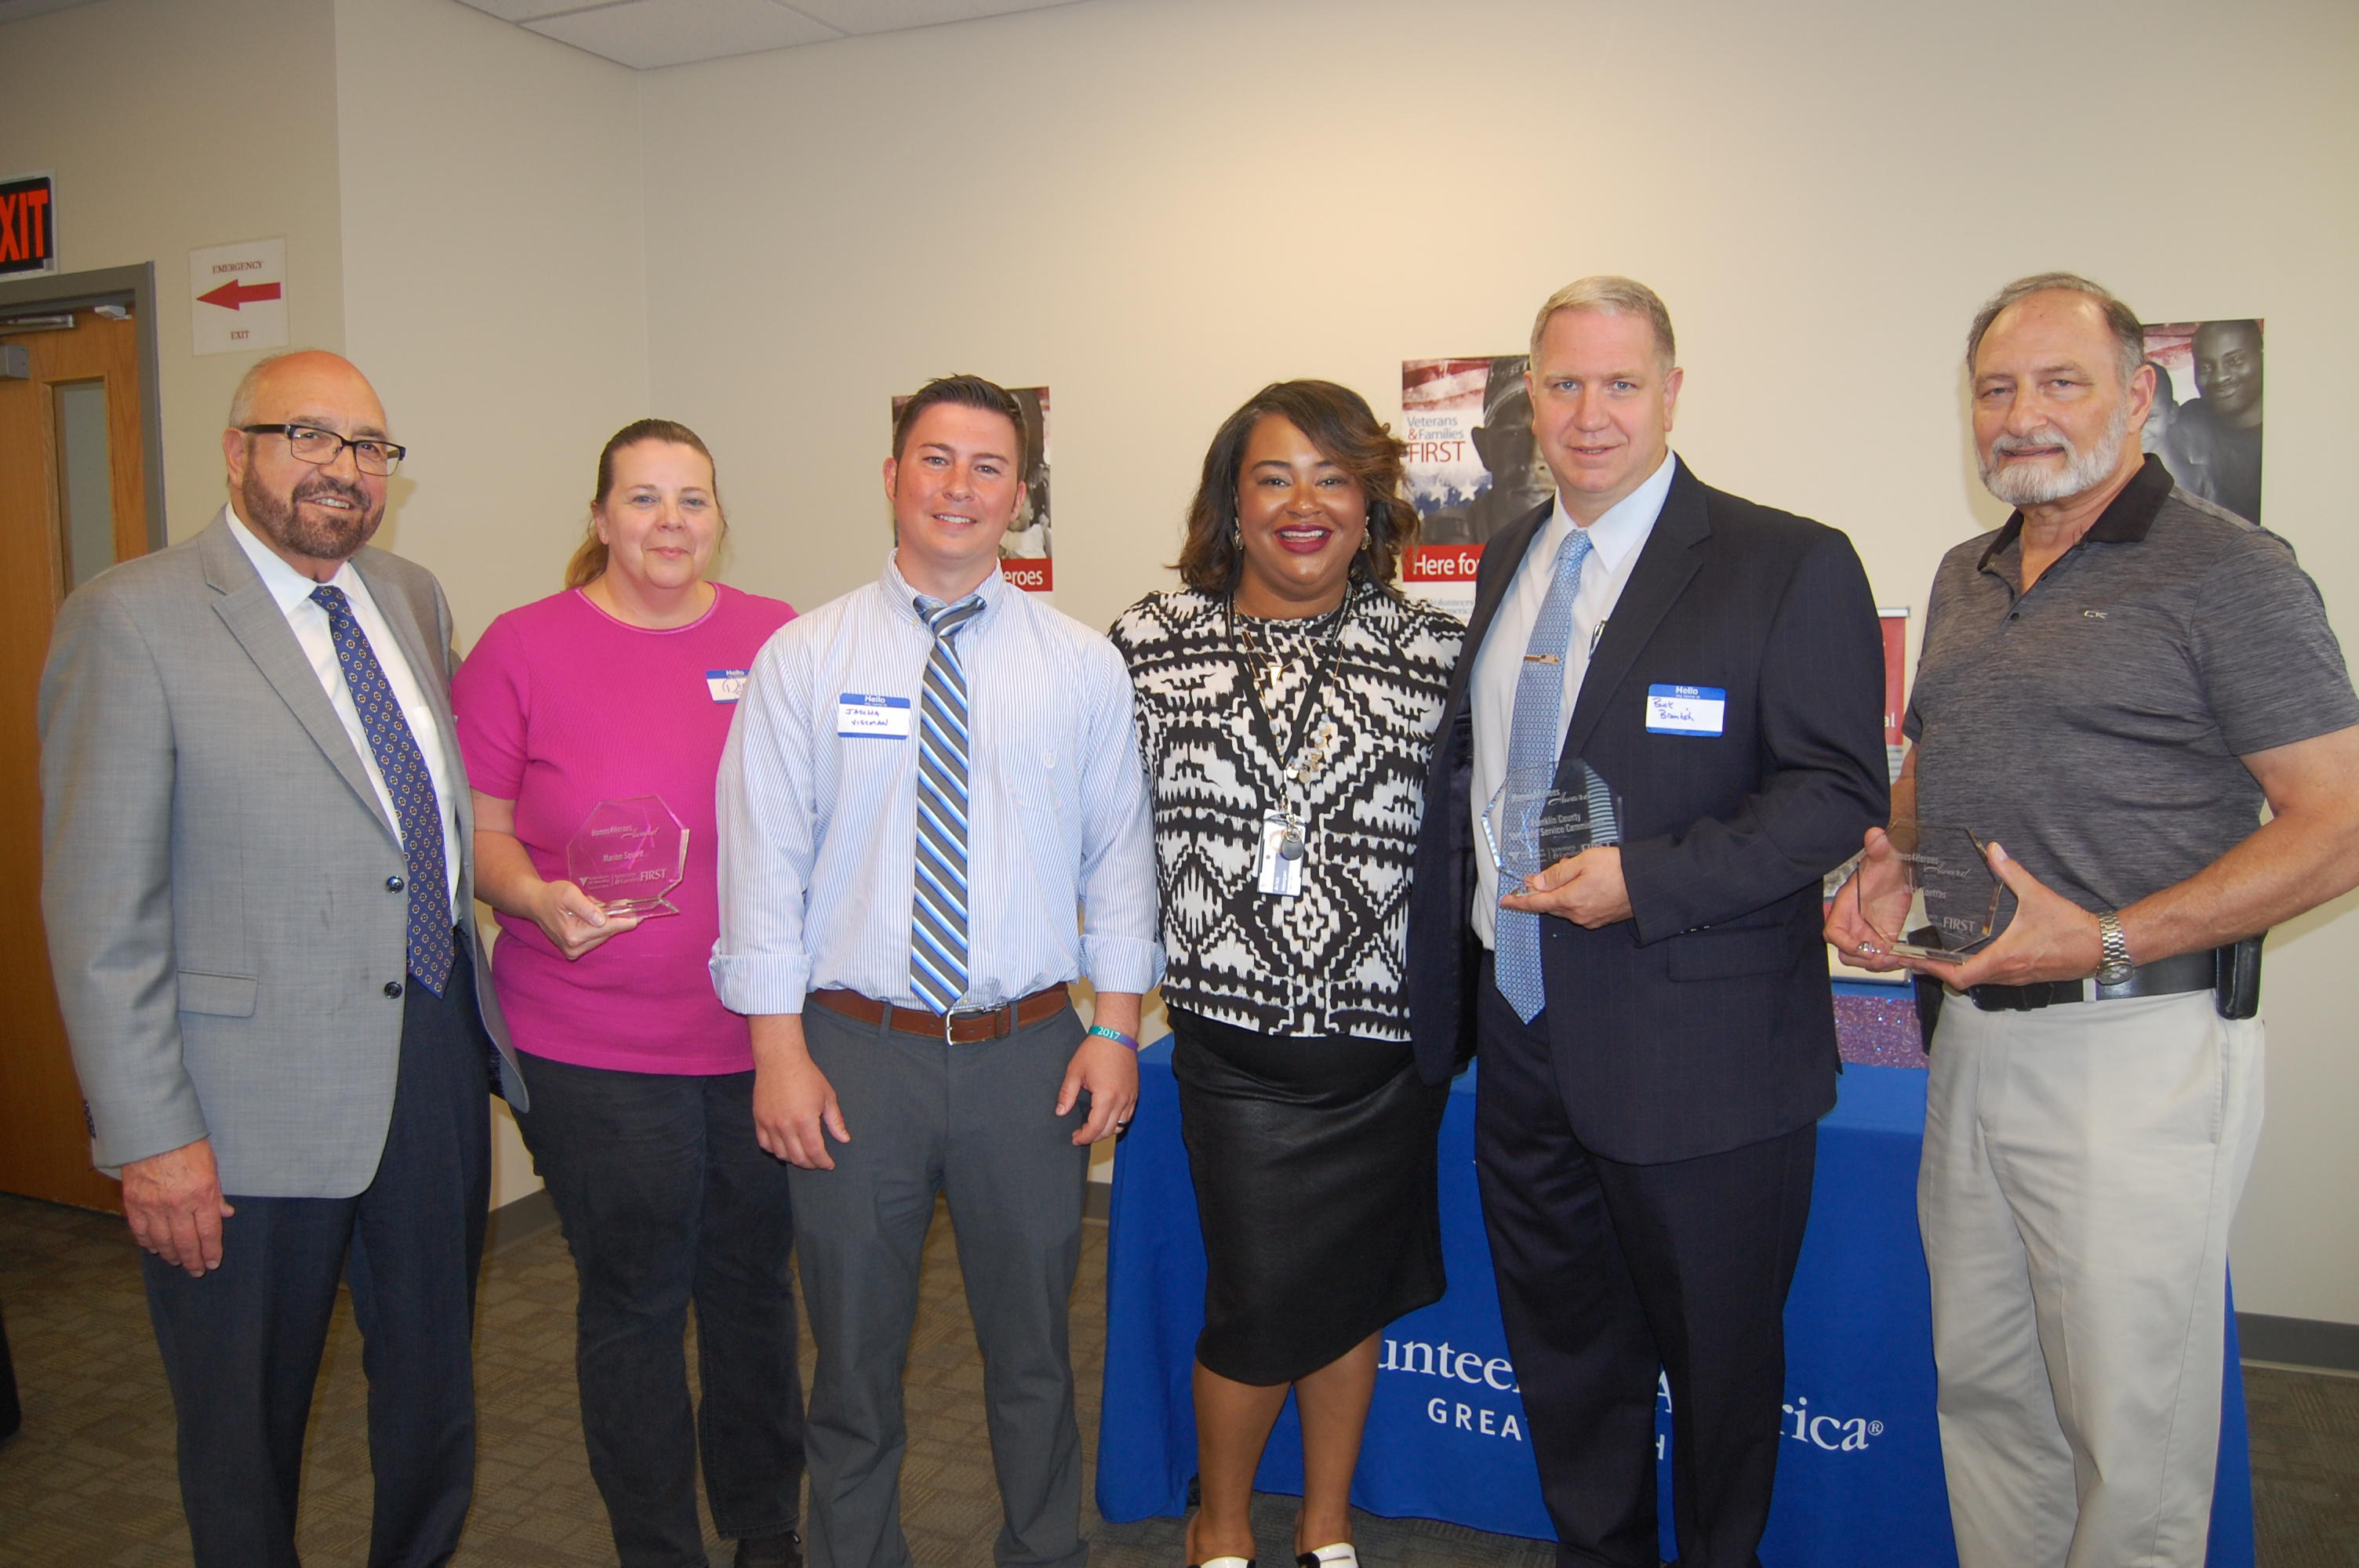 Dennis Kresak (President & CEO of Volunteers of America of Greater Ohio), Diane Sellers (Marion Square), Jascha L. Vissman (Franklin County Veteran Service Commission), Arica Morgan (Program Director of Columbus Veterans Programs at Volunteers of America of Greater Ohio), Robert Bramlish (Executive Director of Franklin County Veteran Service Commission) and Nick Kontras.